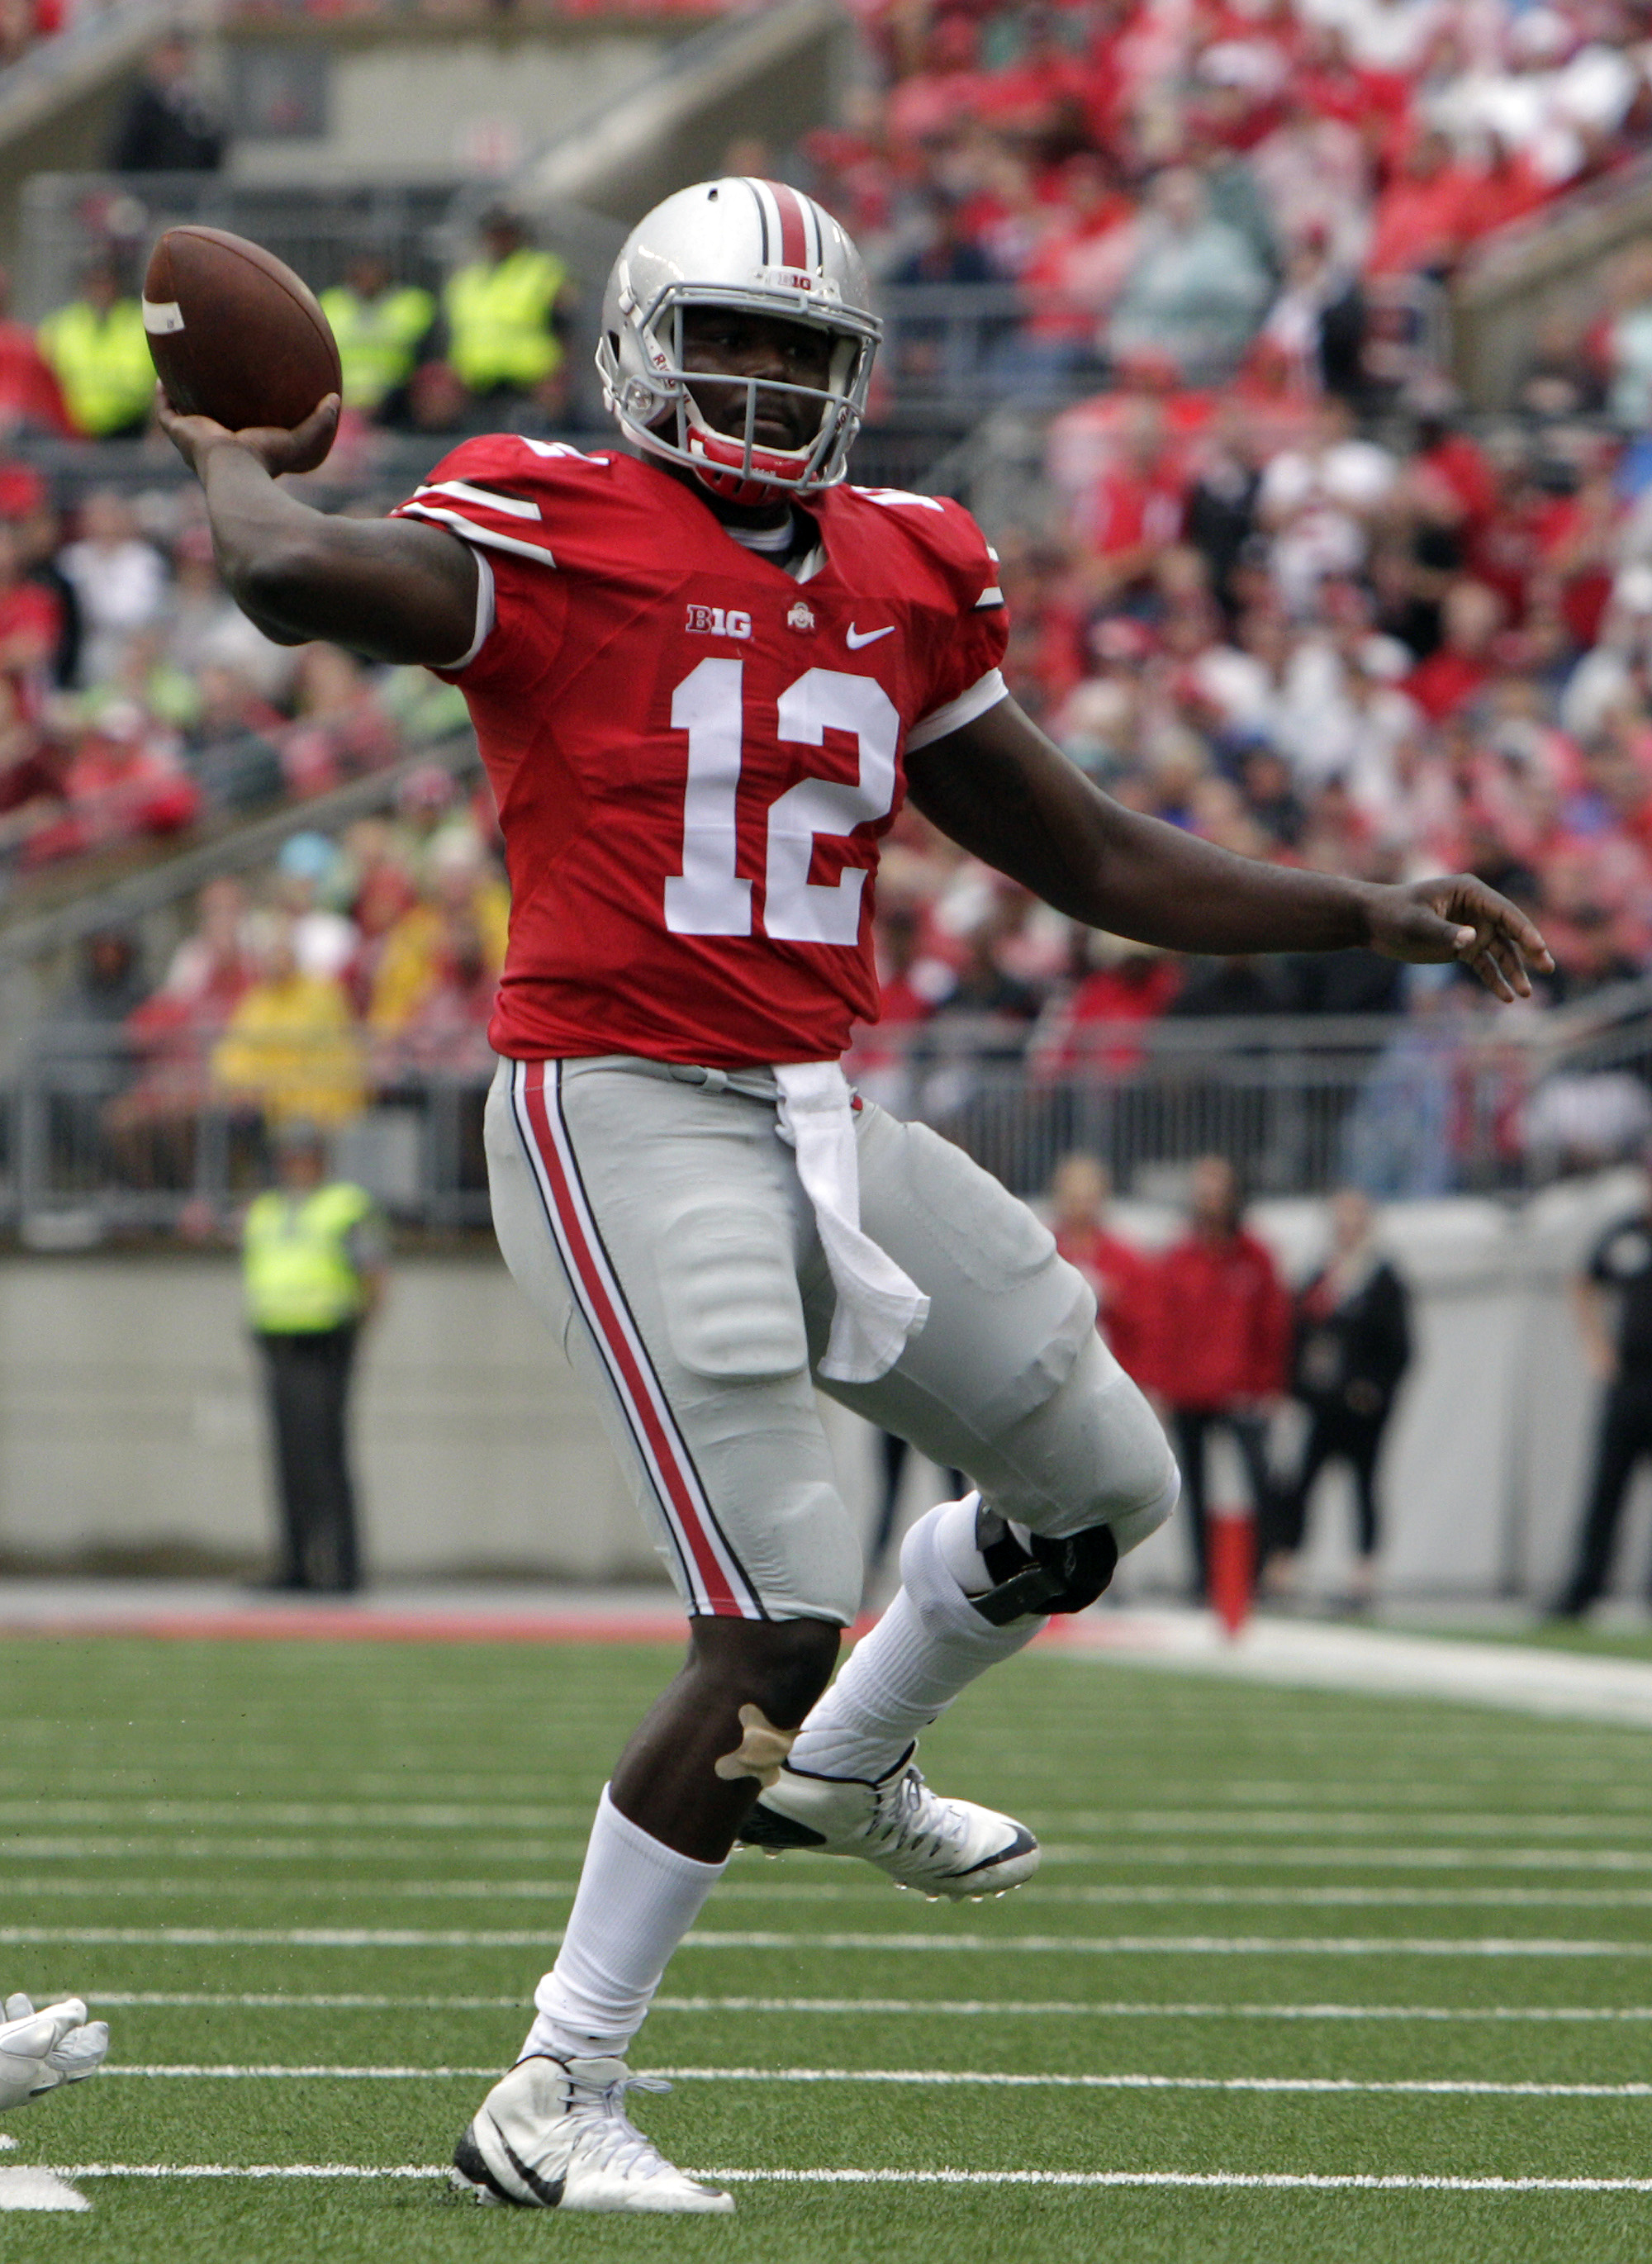 Ohio State quarterback Cardale Jones throws a apss against Northern Illinois during the first quarter of an NCAA college football game Saturday, Sept. 19, 2015, in Columbus, Ohio. (AP Photo/Jay LaPrete)